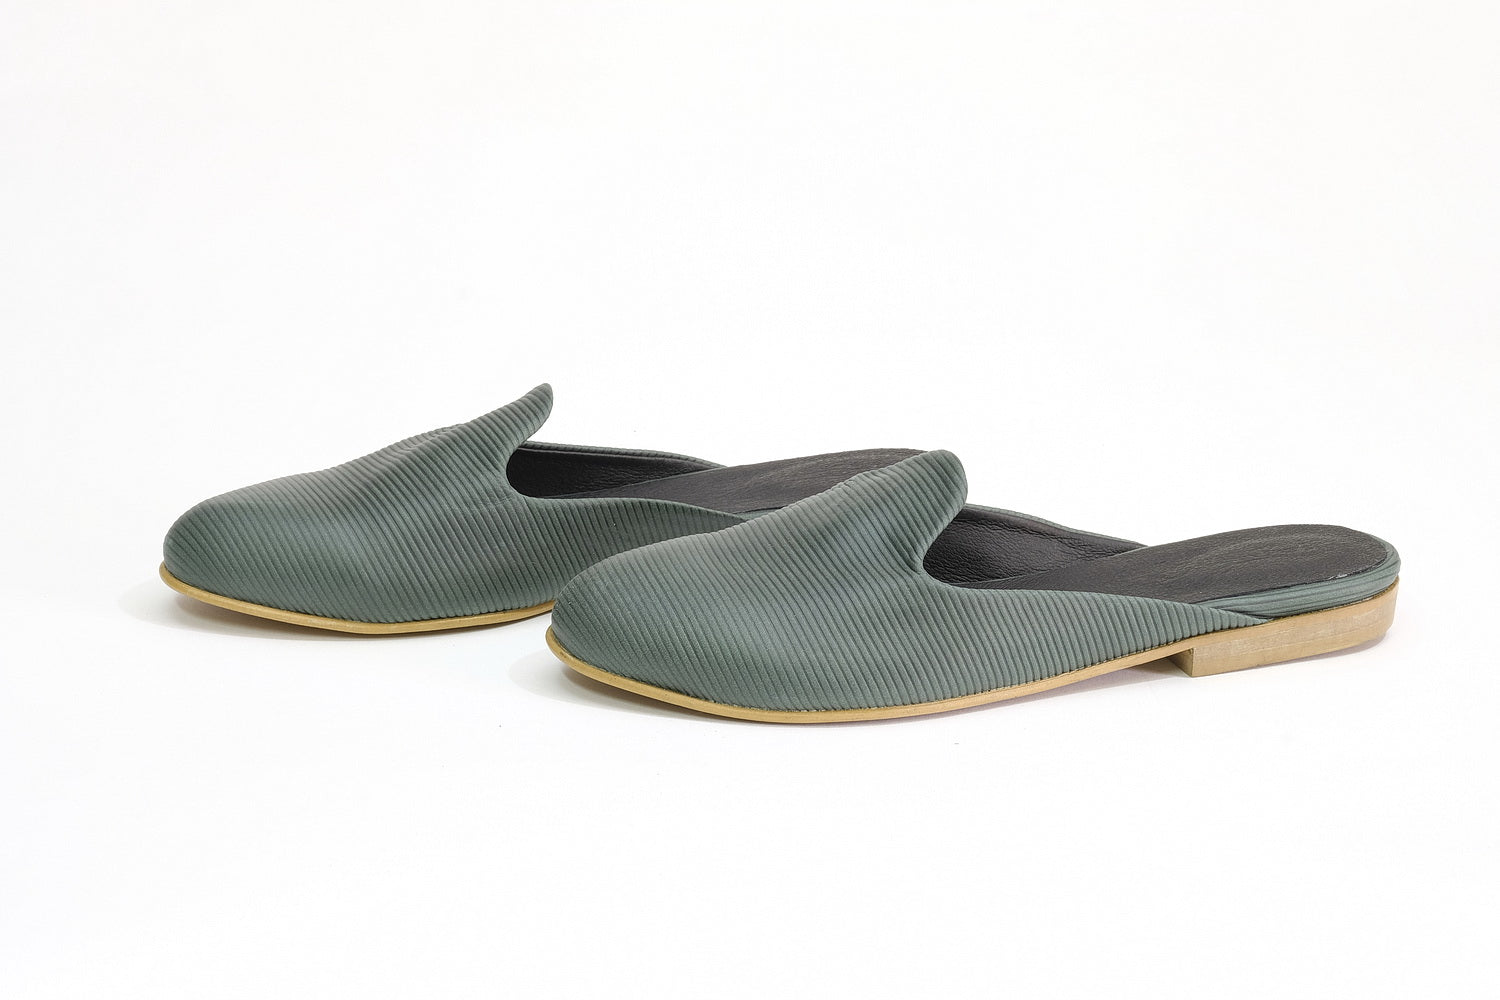 Marrakesh Flats - Green stripes